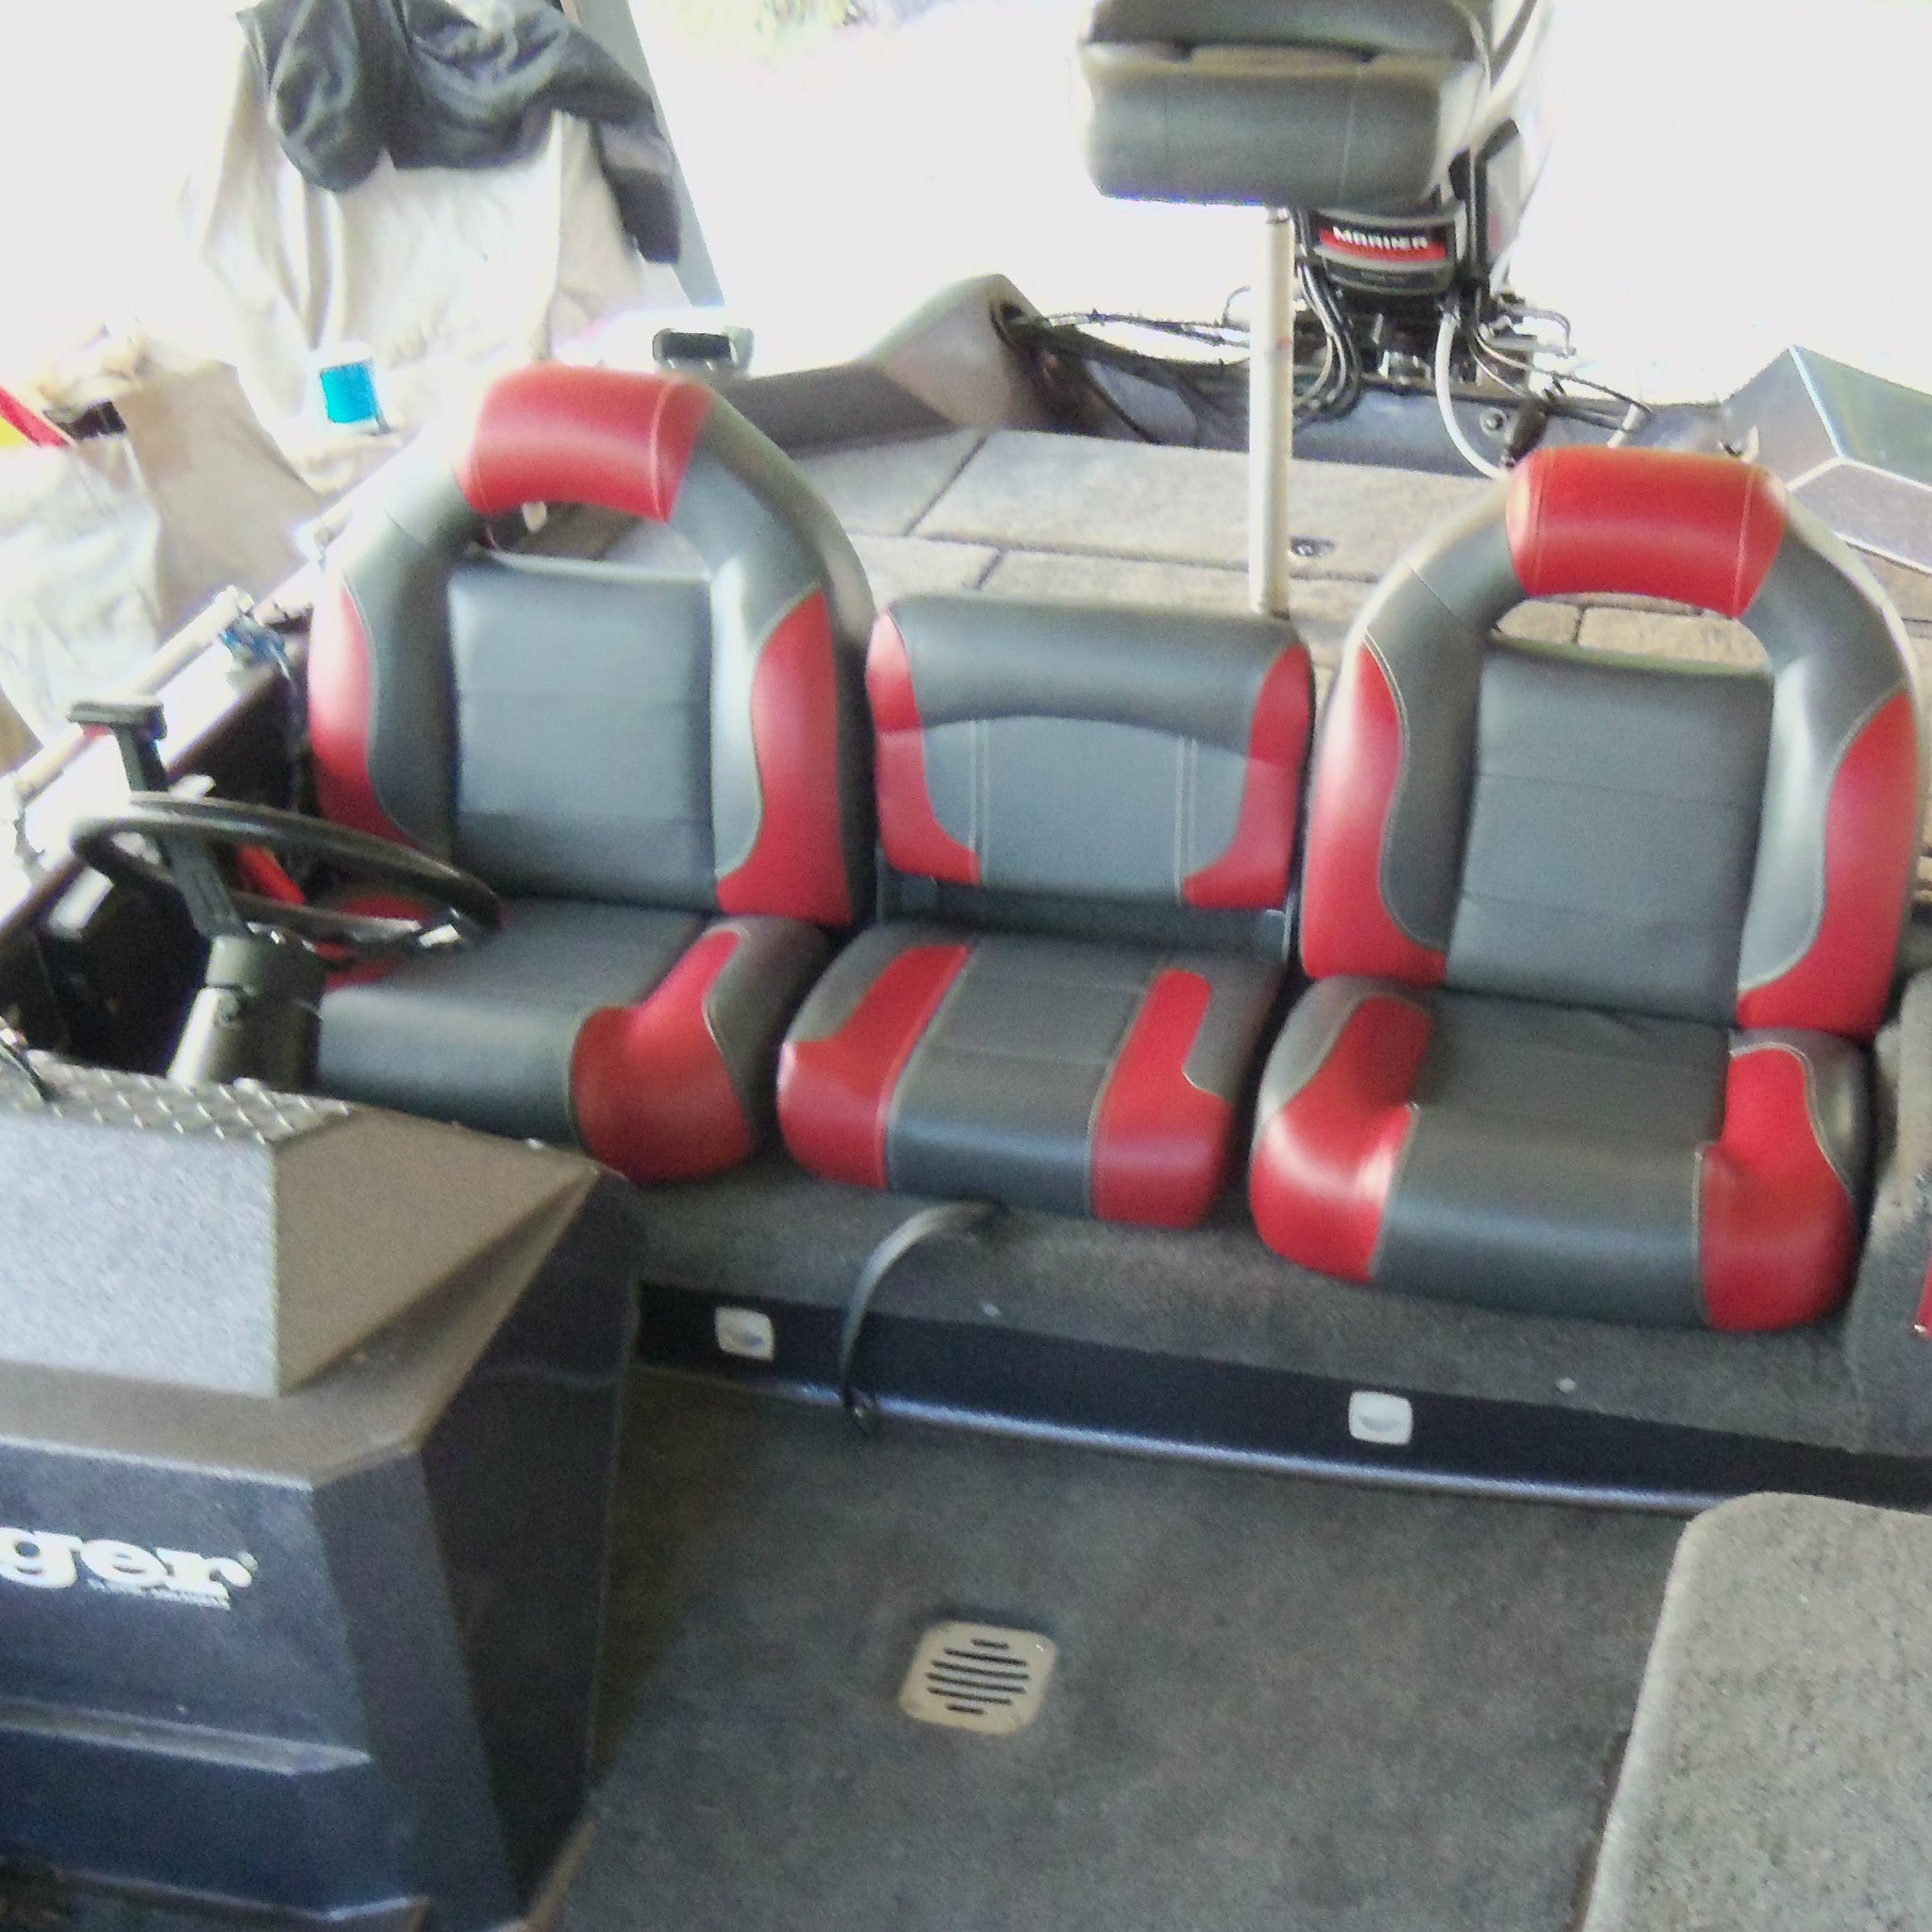 stratos bassboatseats seats com pedestal boat seat products interior bass